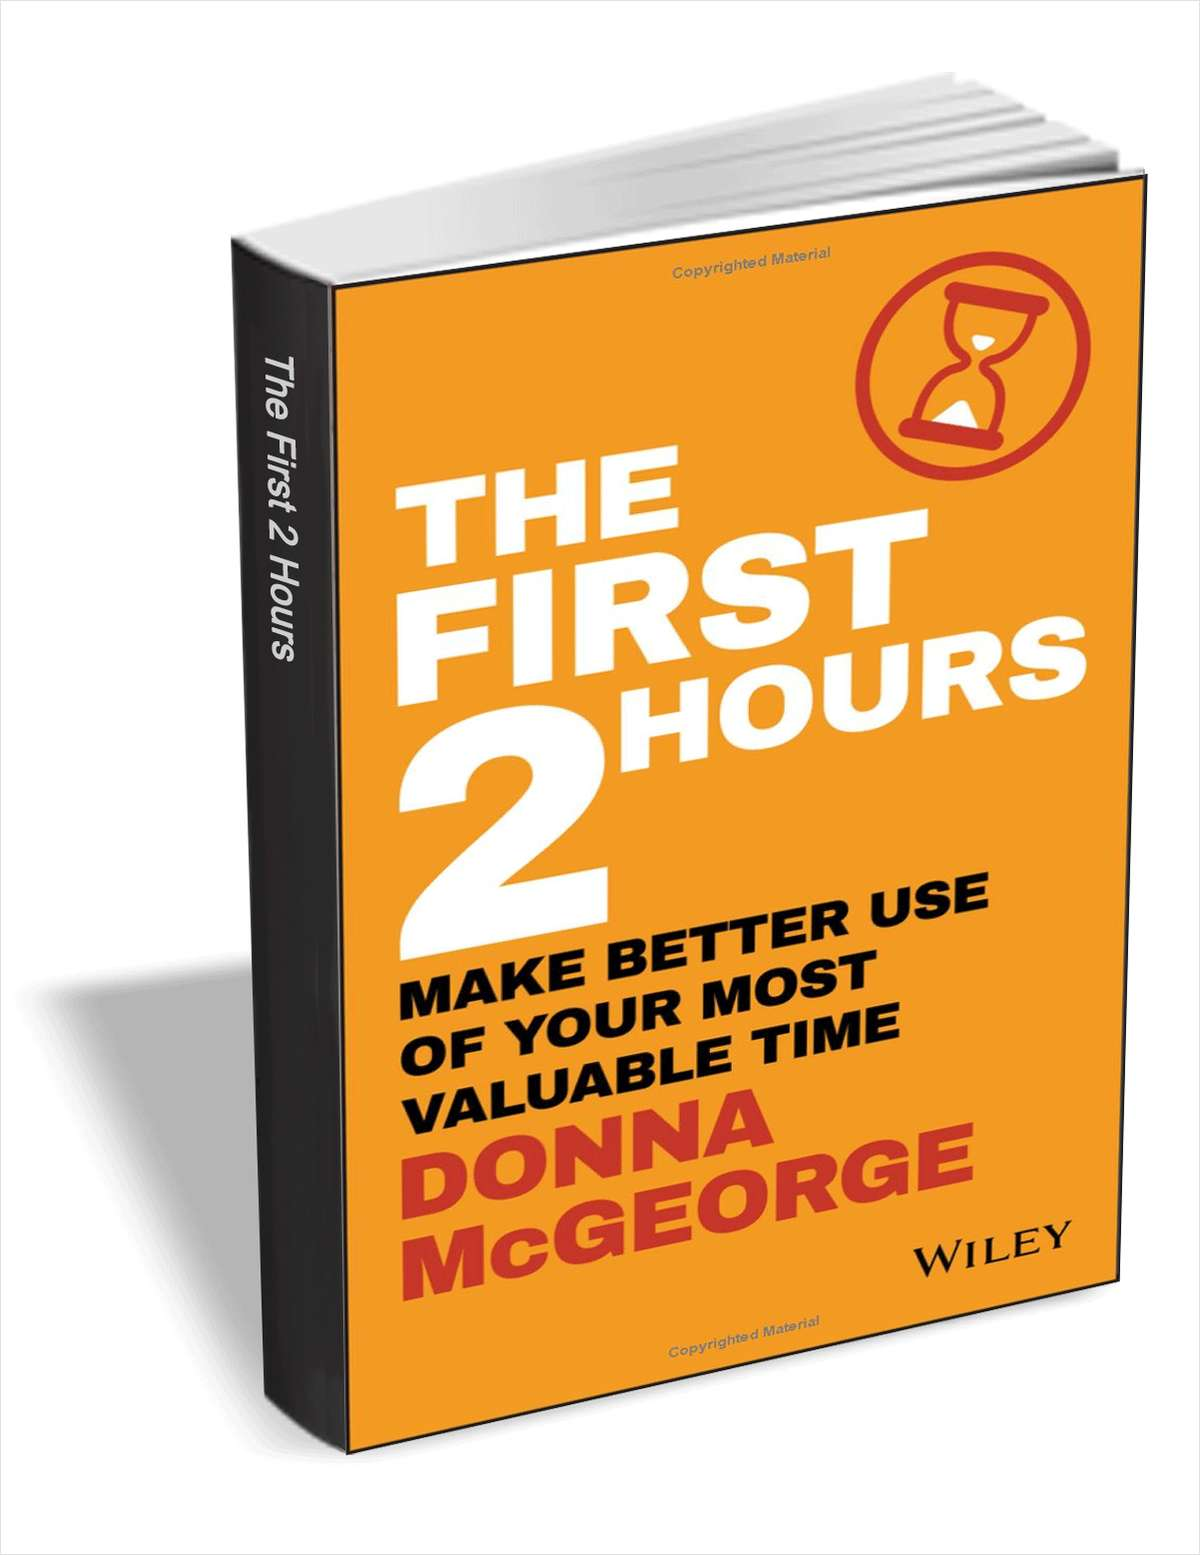 The First 2 Hours: Make Better Use of Your Most Valuable Time ($11.99 Value) FREE for a Limited Time